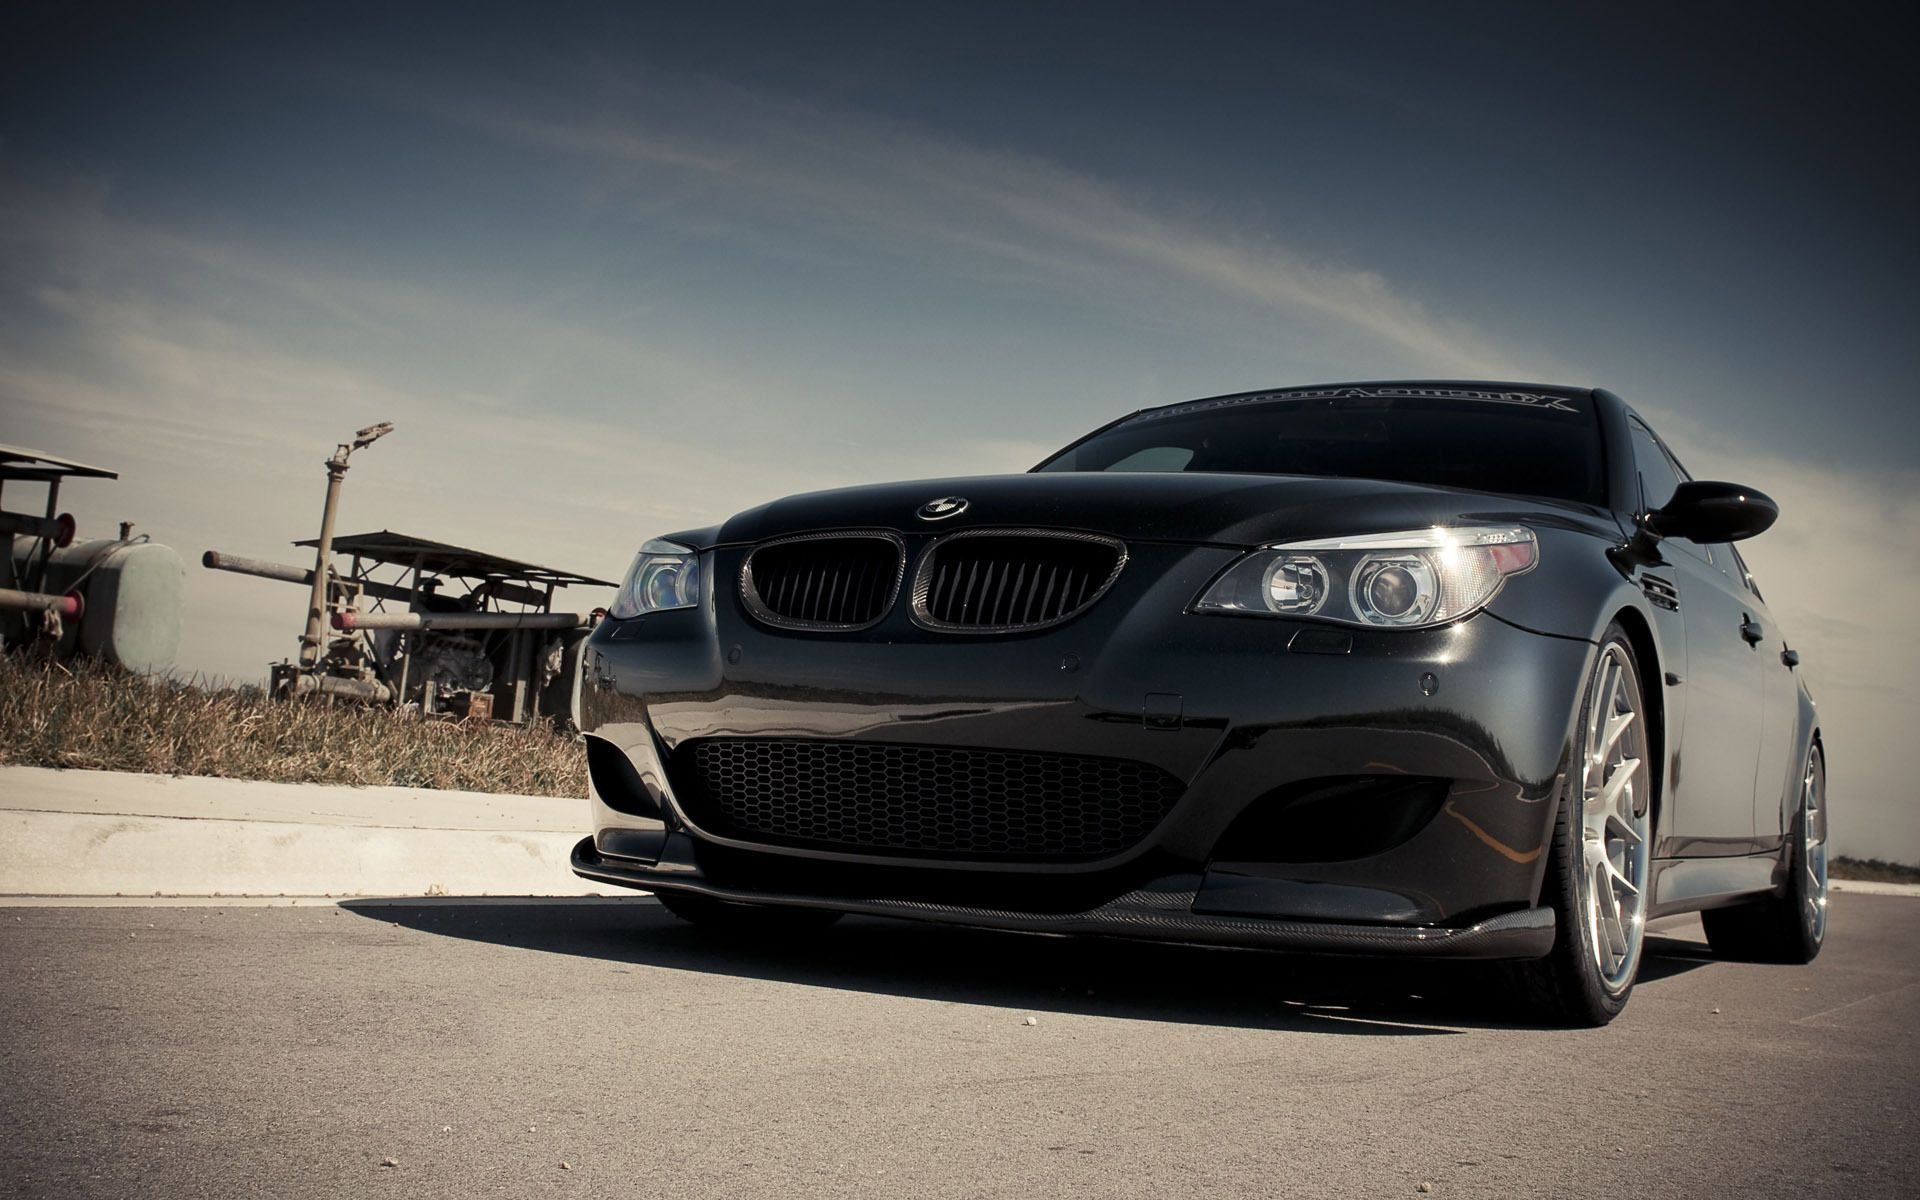 Bmw M5 E60 Hd Wallpaper 1920x1080 1920x1200   BMWCase 1920x1200